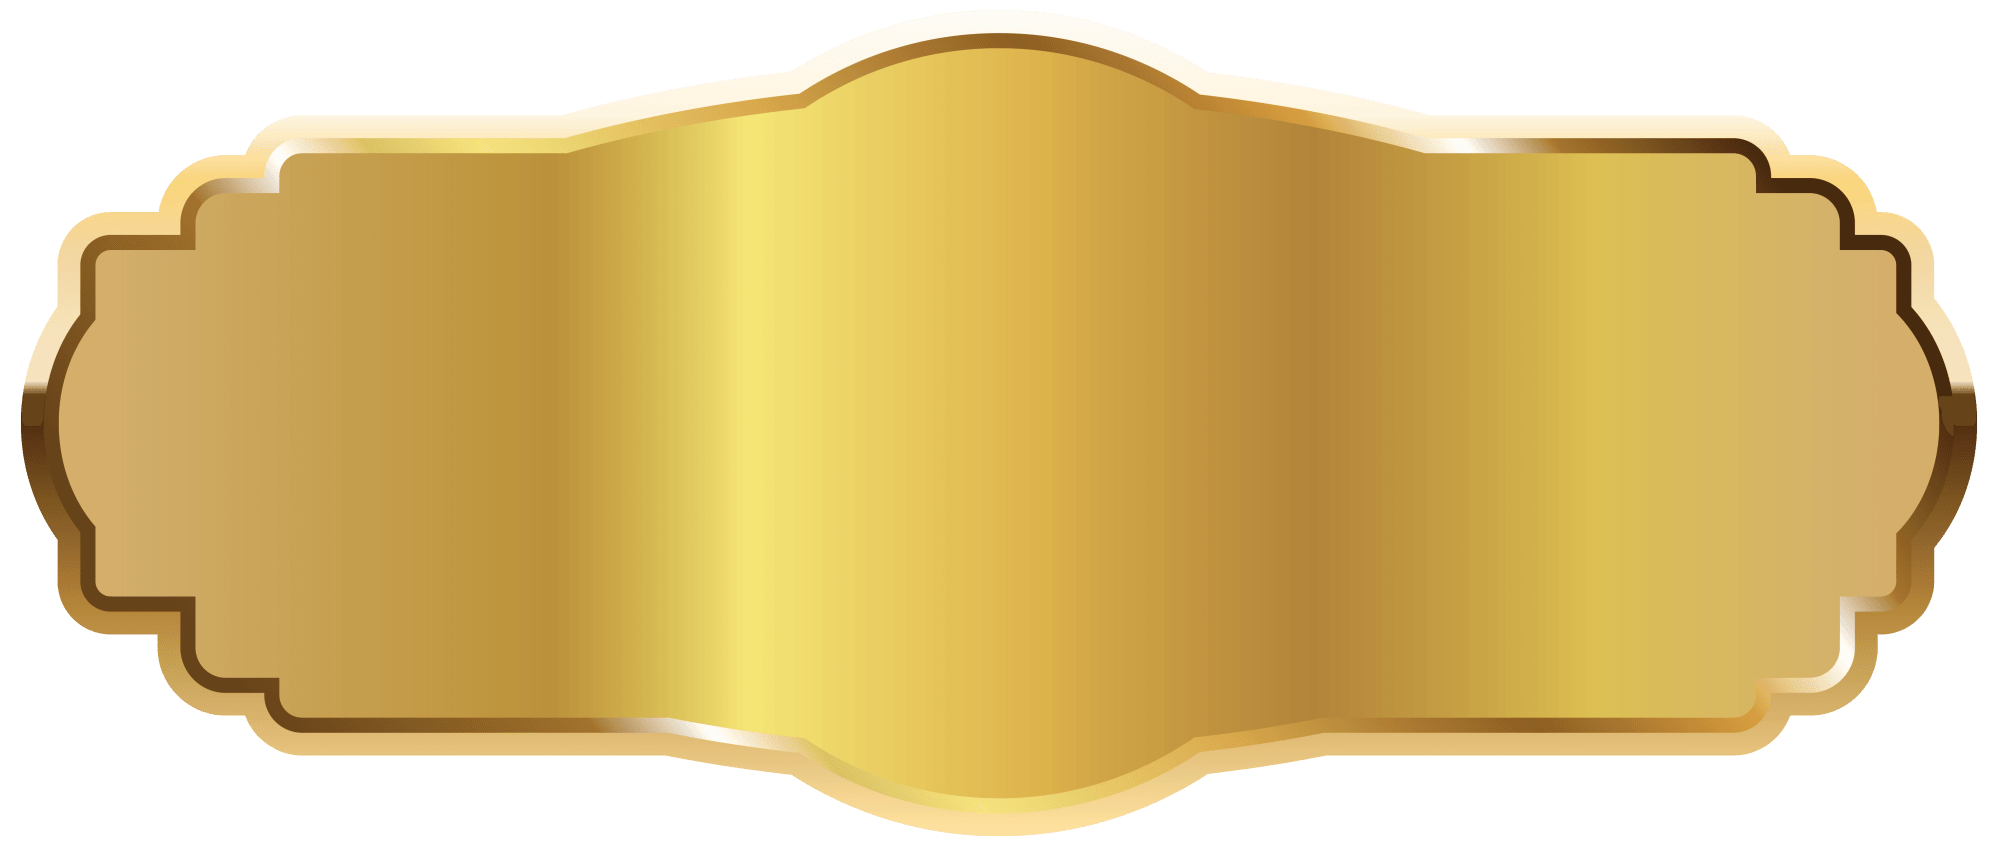 hight resolution of gold label png clipart image